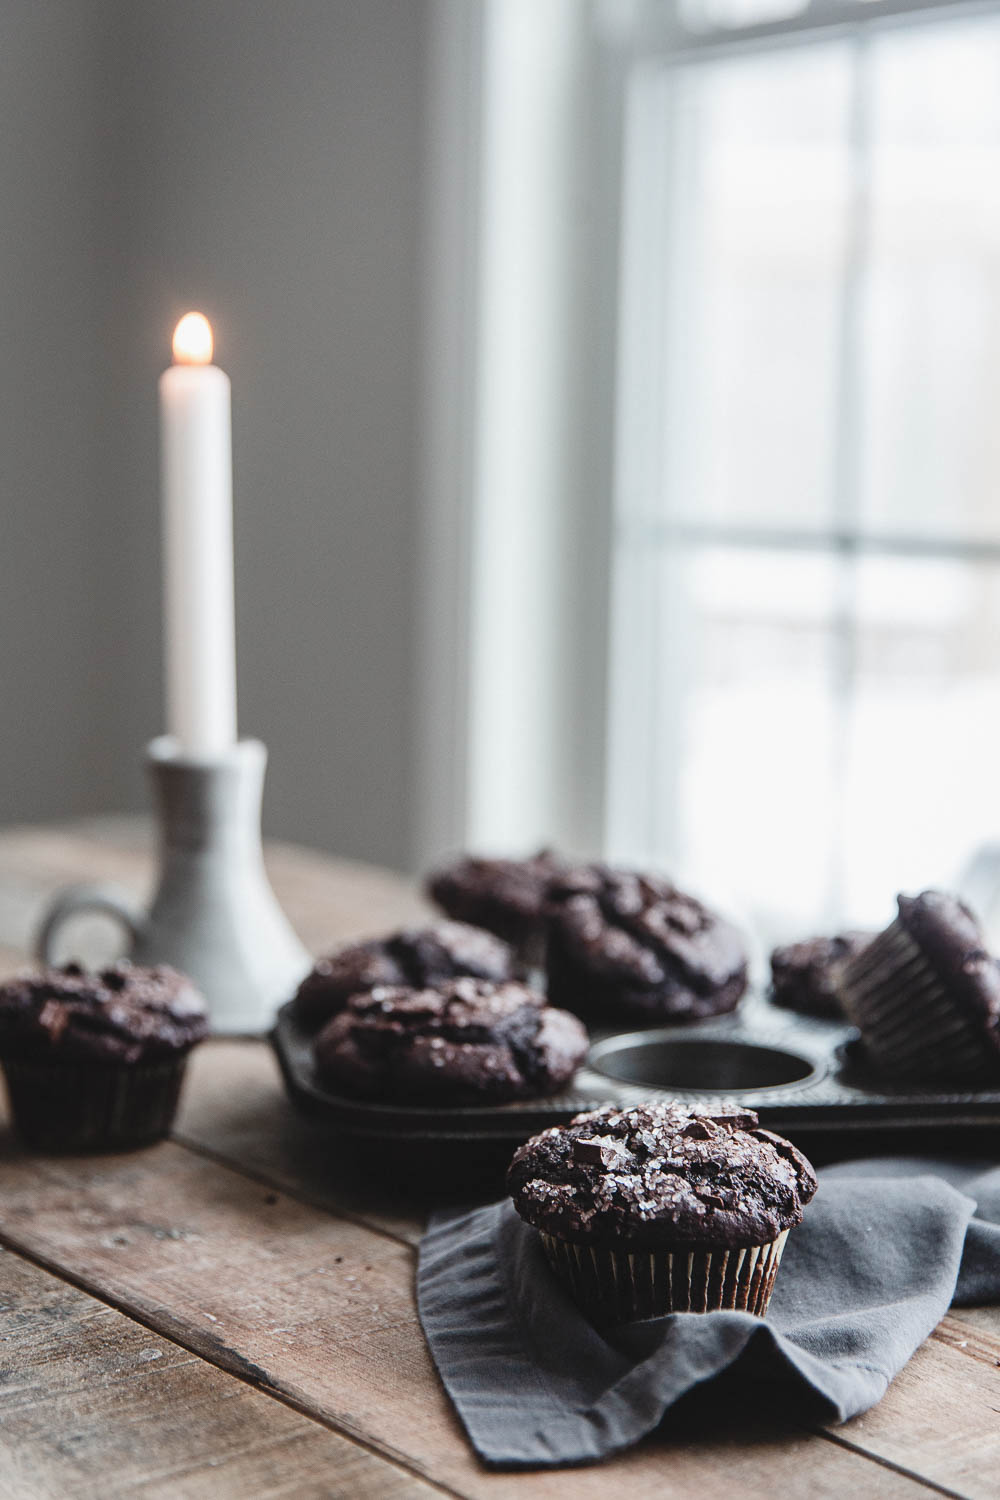 Double chocolate muffins on a cold winter morning